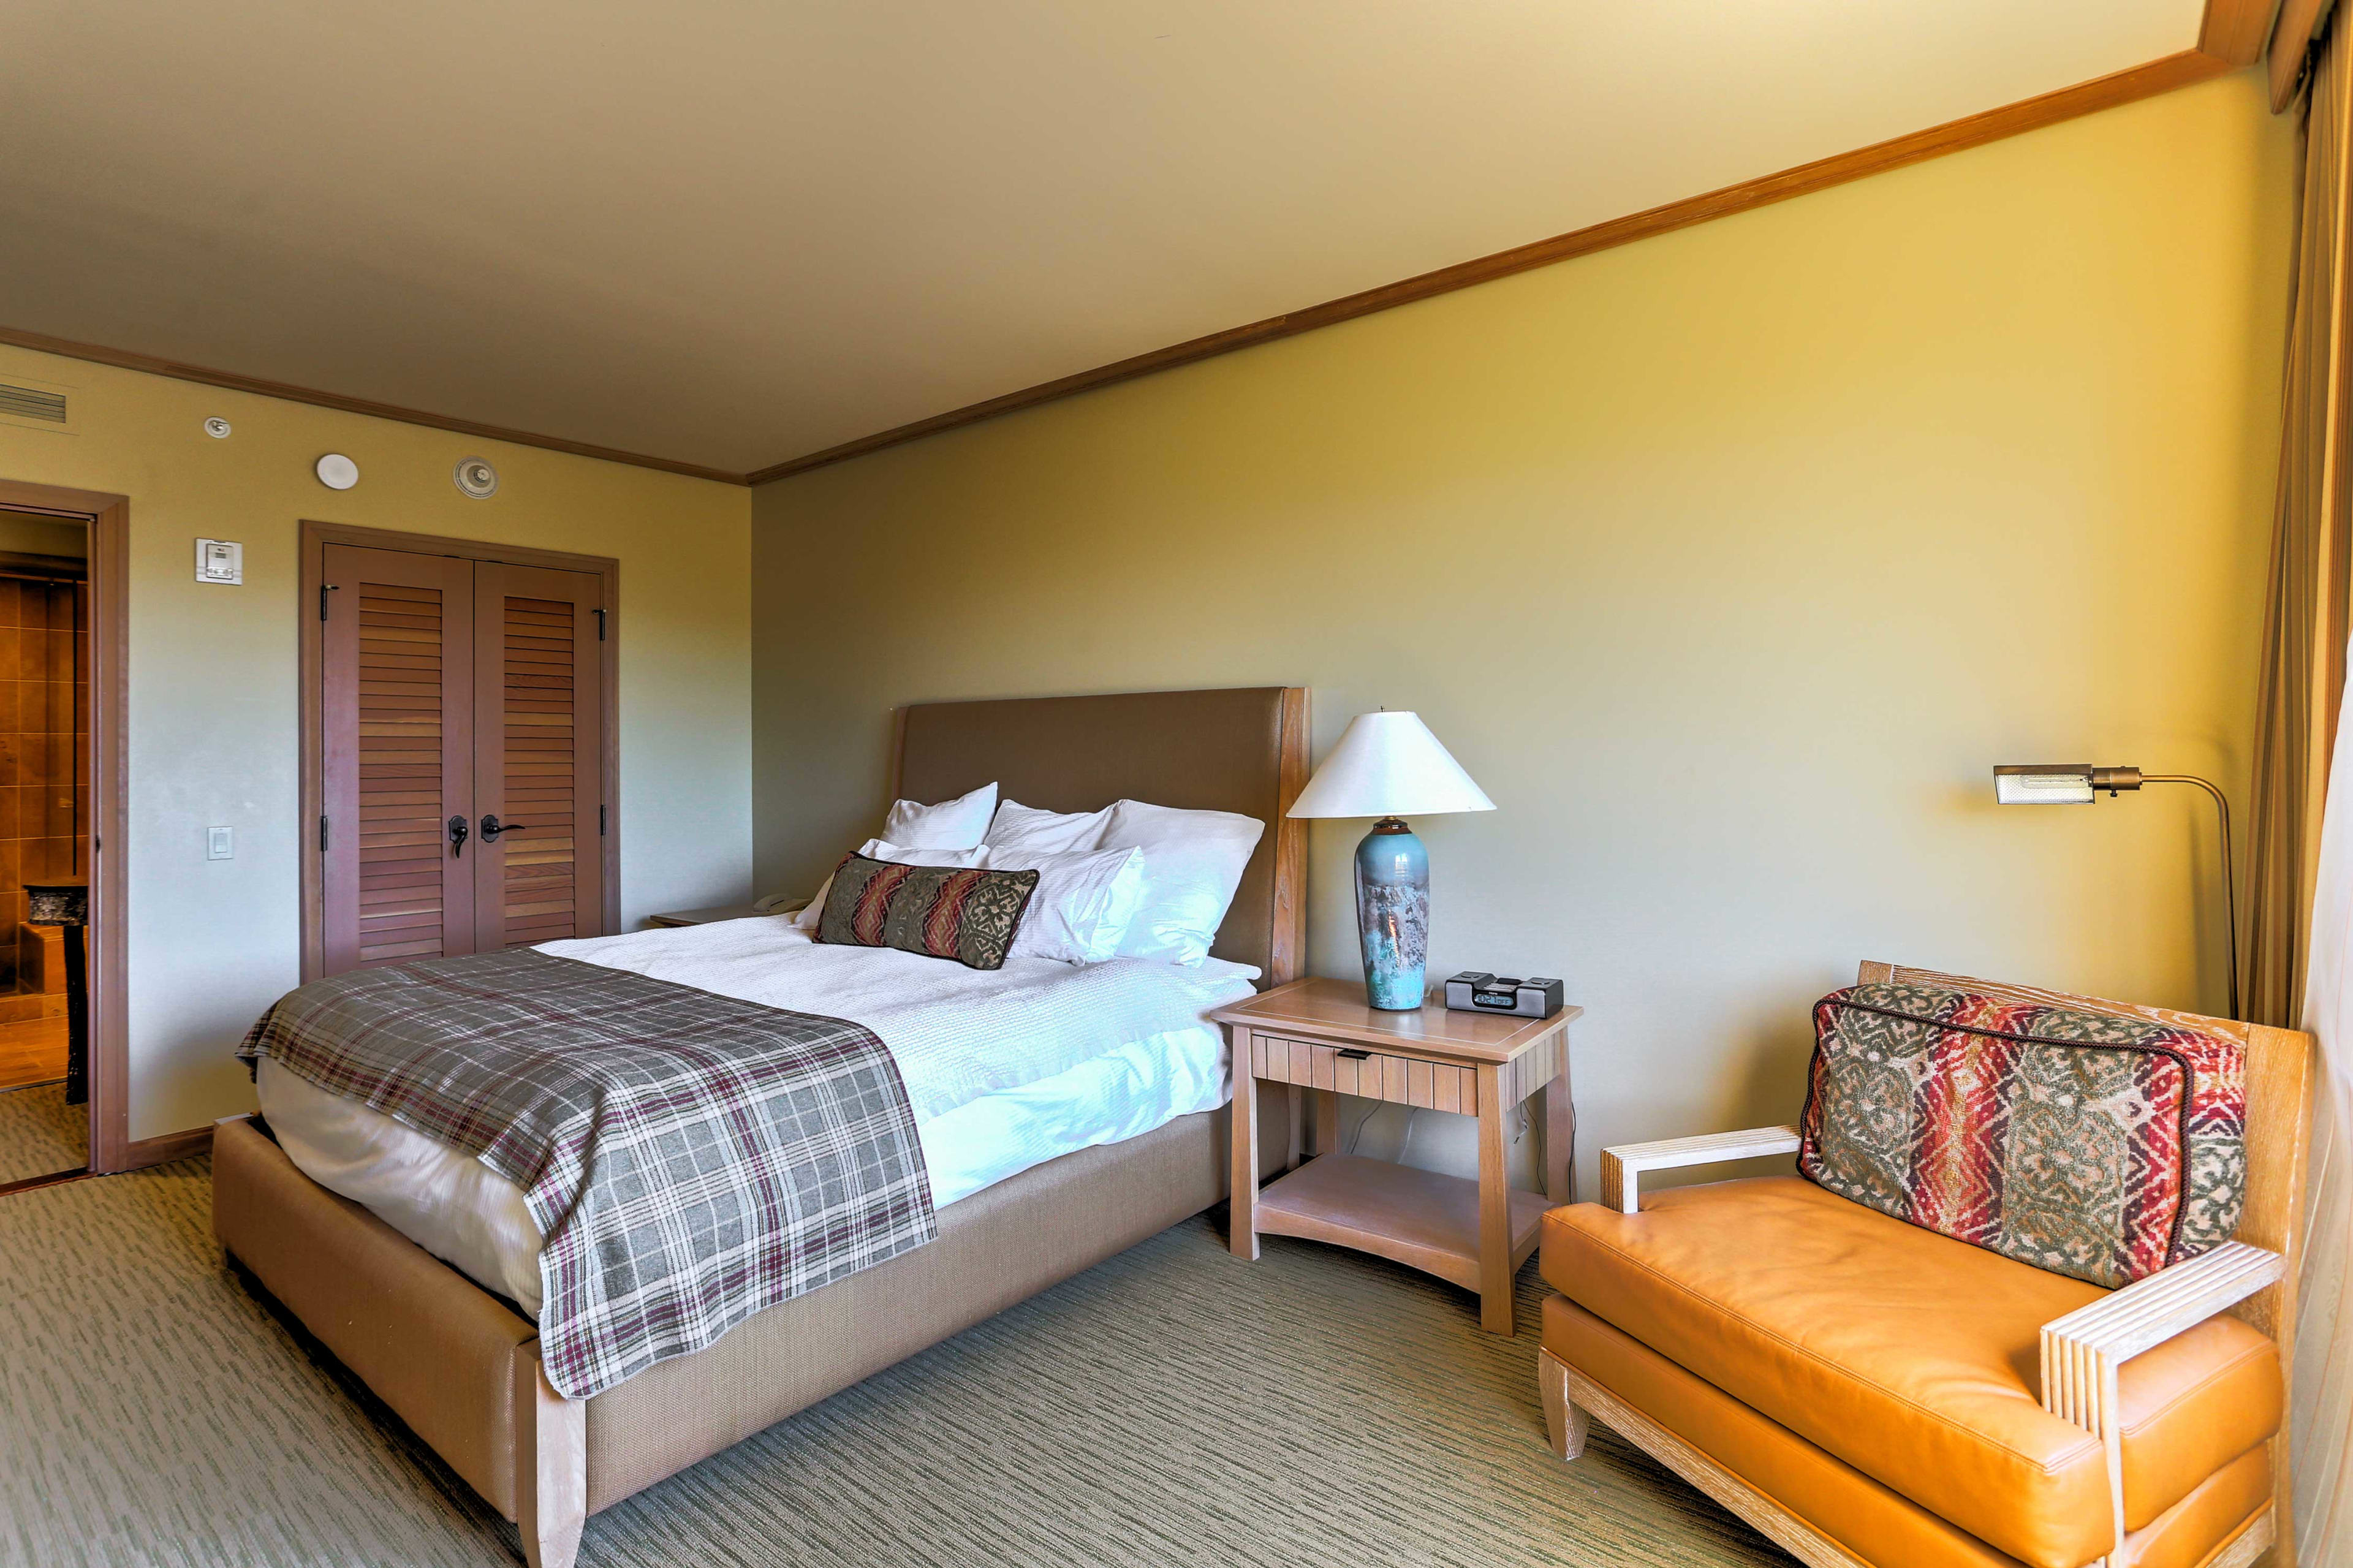 The bedroom offers a king-sized bed.